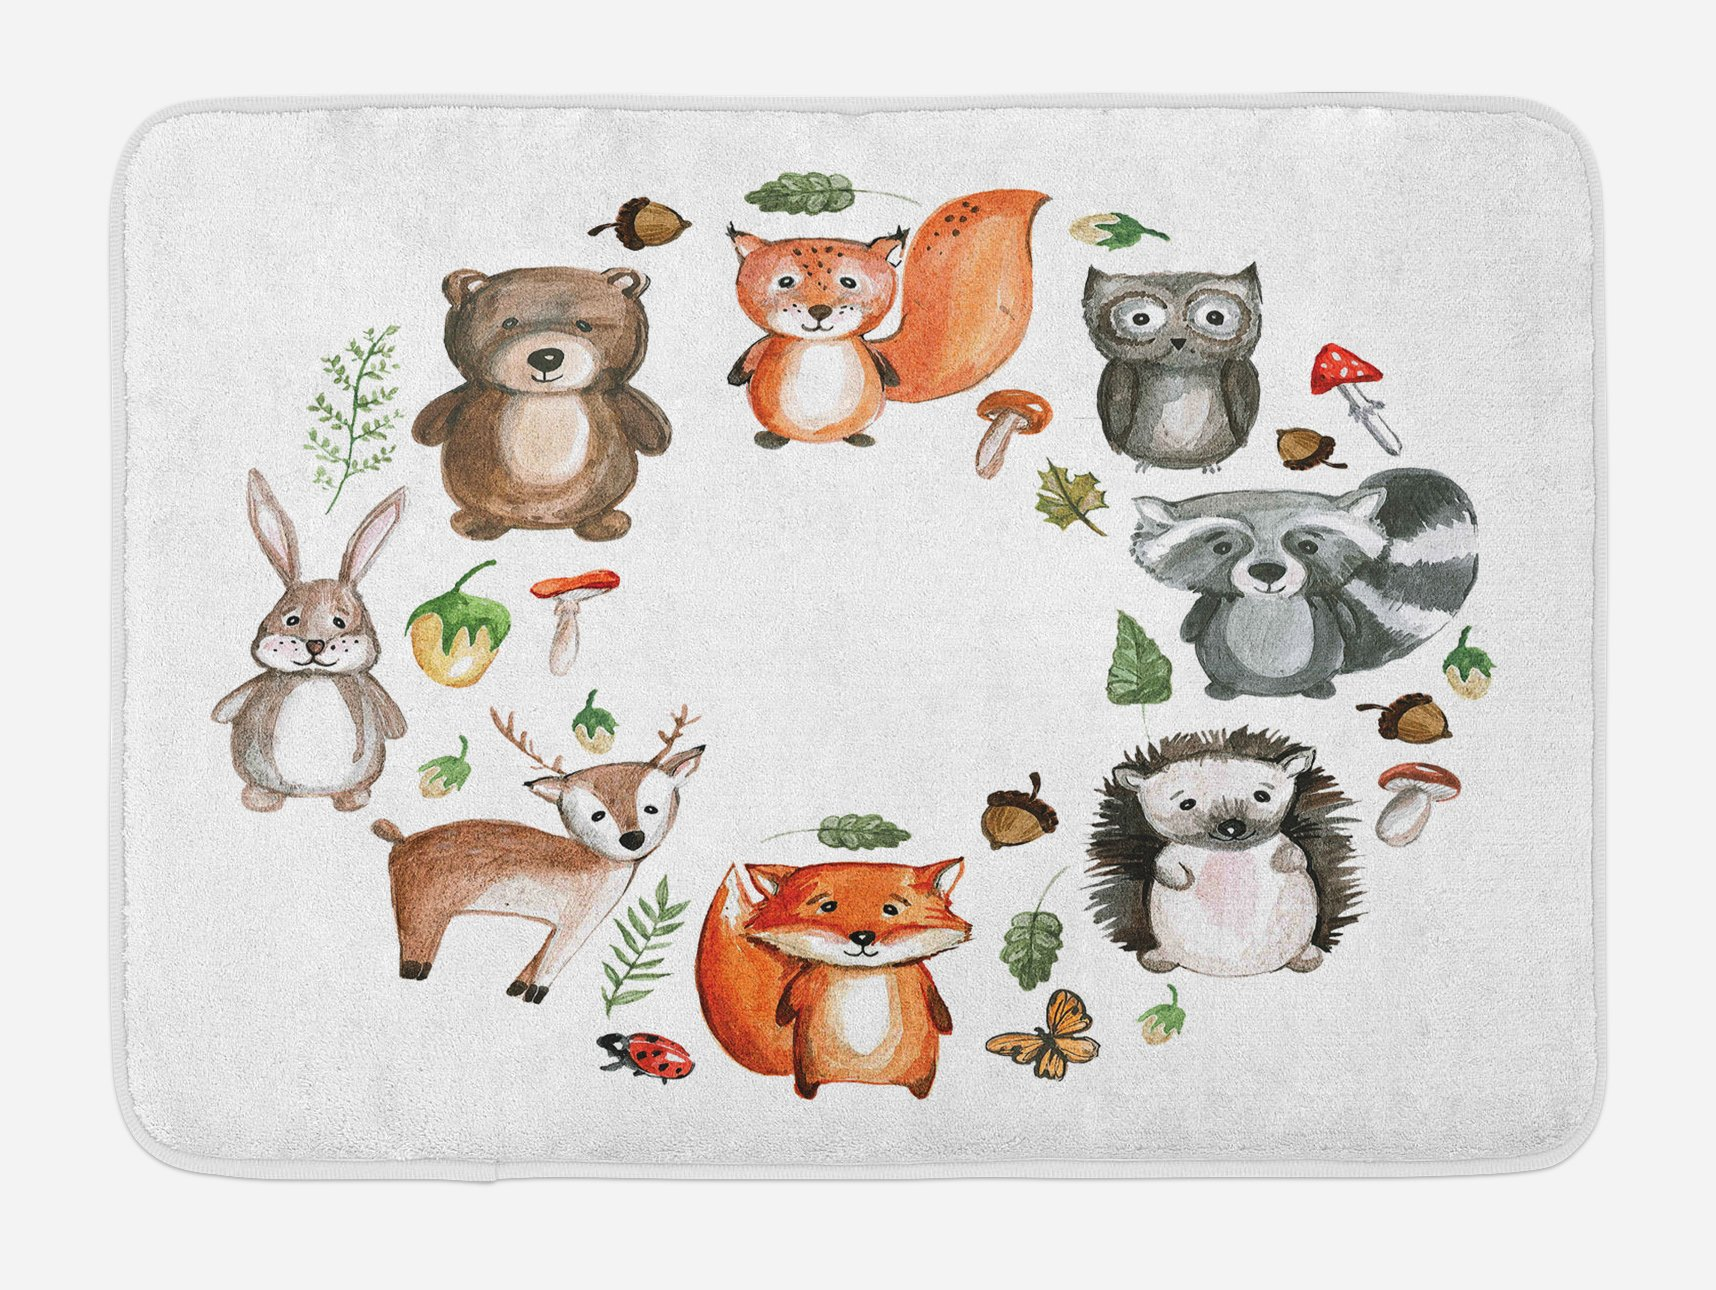 Lunarable Woodland Bath Mat, Animals of The Forest with Mushrooms Acorns Circular Frame Cartoon Pastel Colors, Plush Bathroom Decor Mat with Non Slip Backing, 29.5 W X 17.5 W Inches, Multicolor